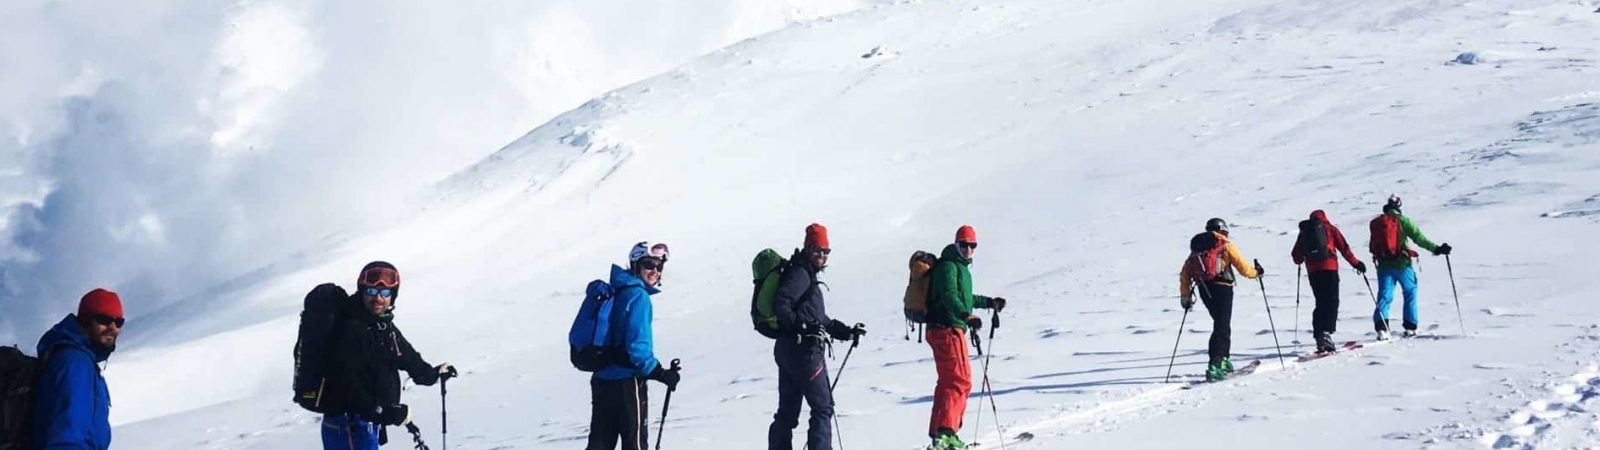 Ski Camping A Guide to the Delights of Backcountry Skiing